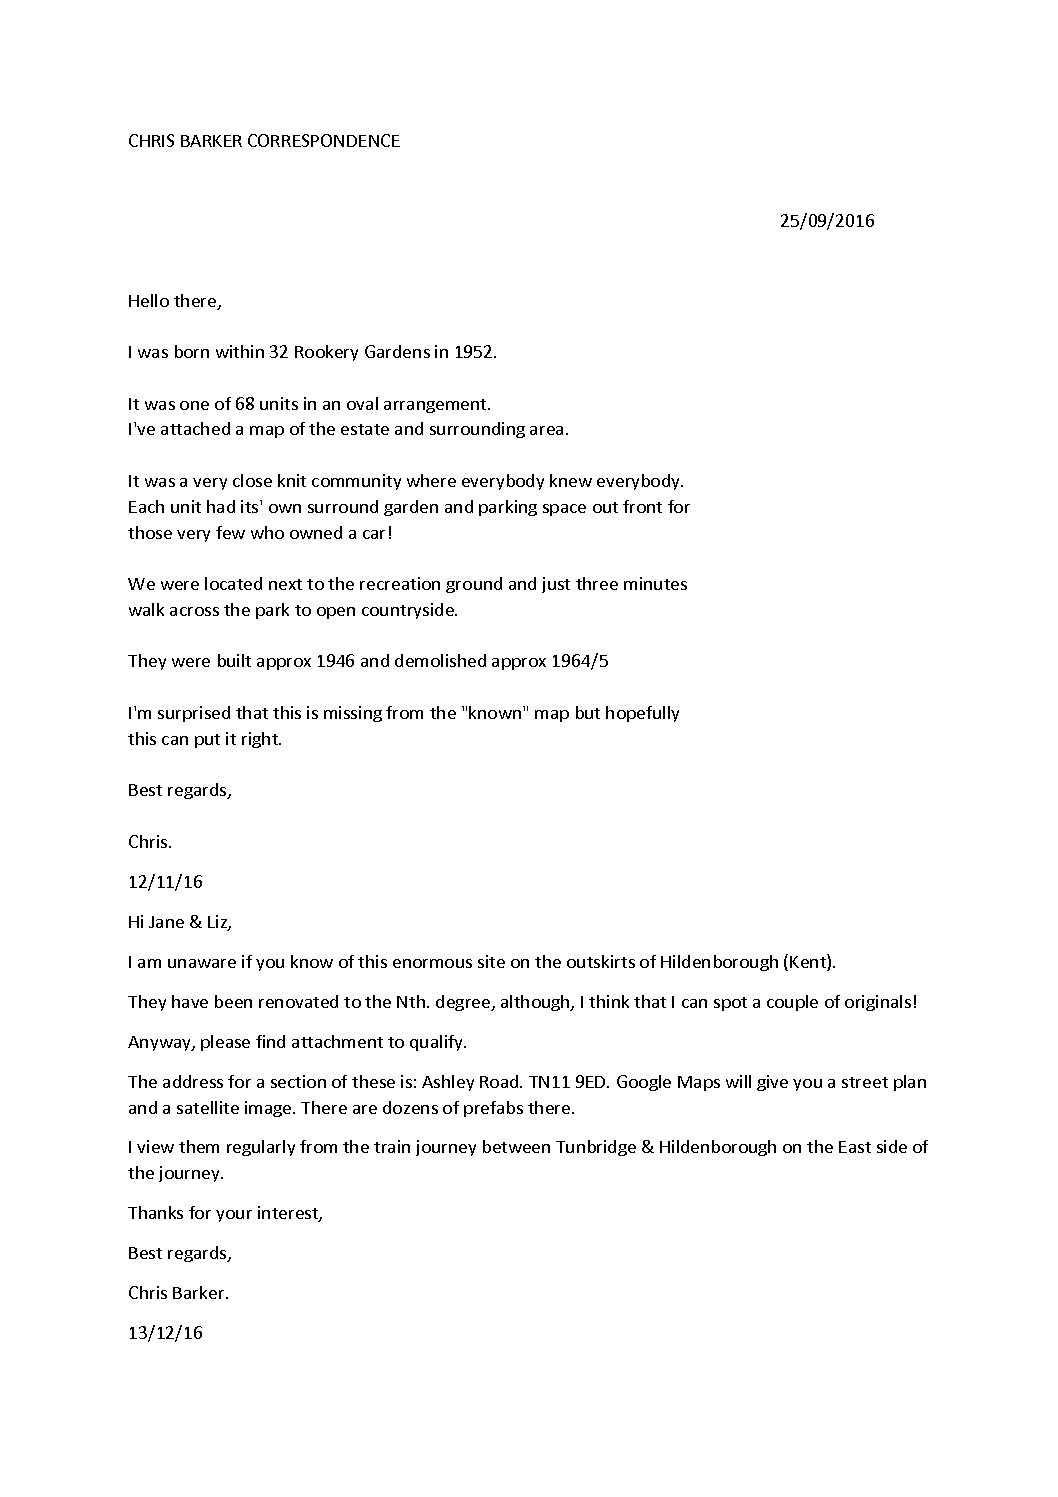 Correspondence with Chris Barker about the Rolvenden prefab